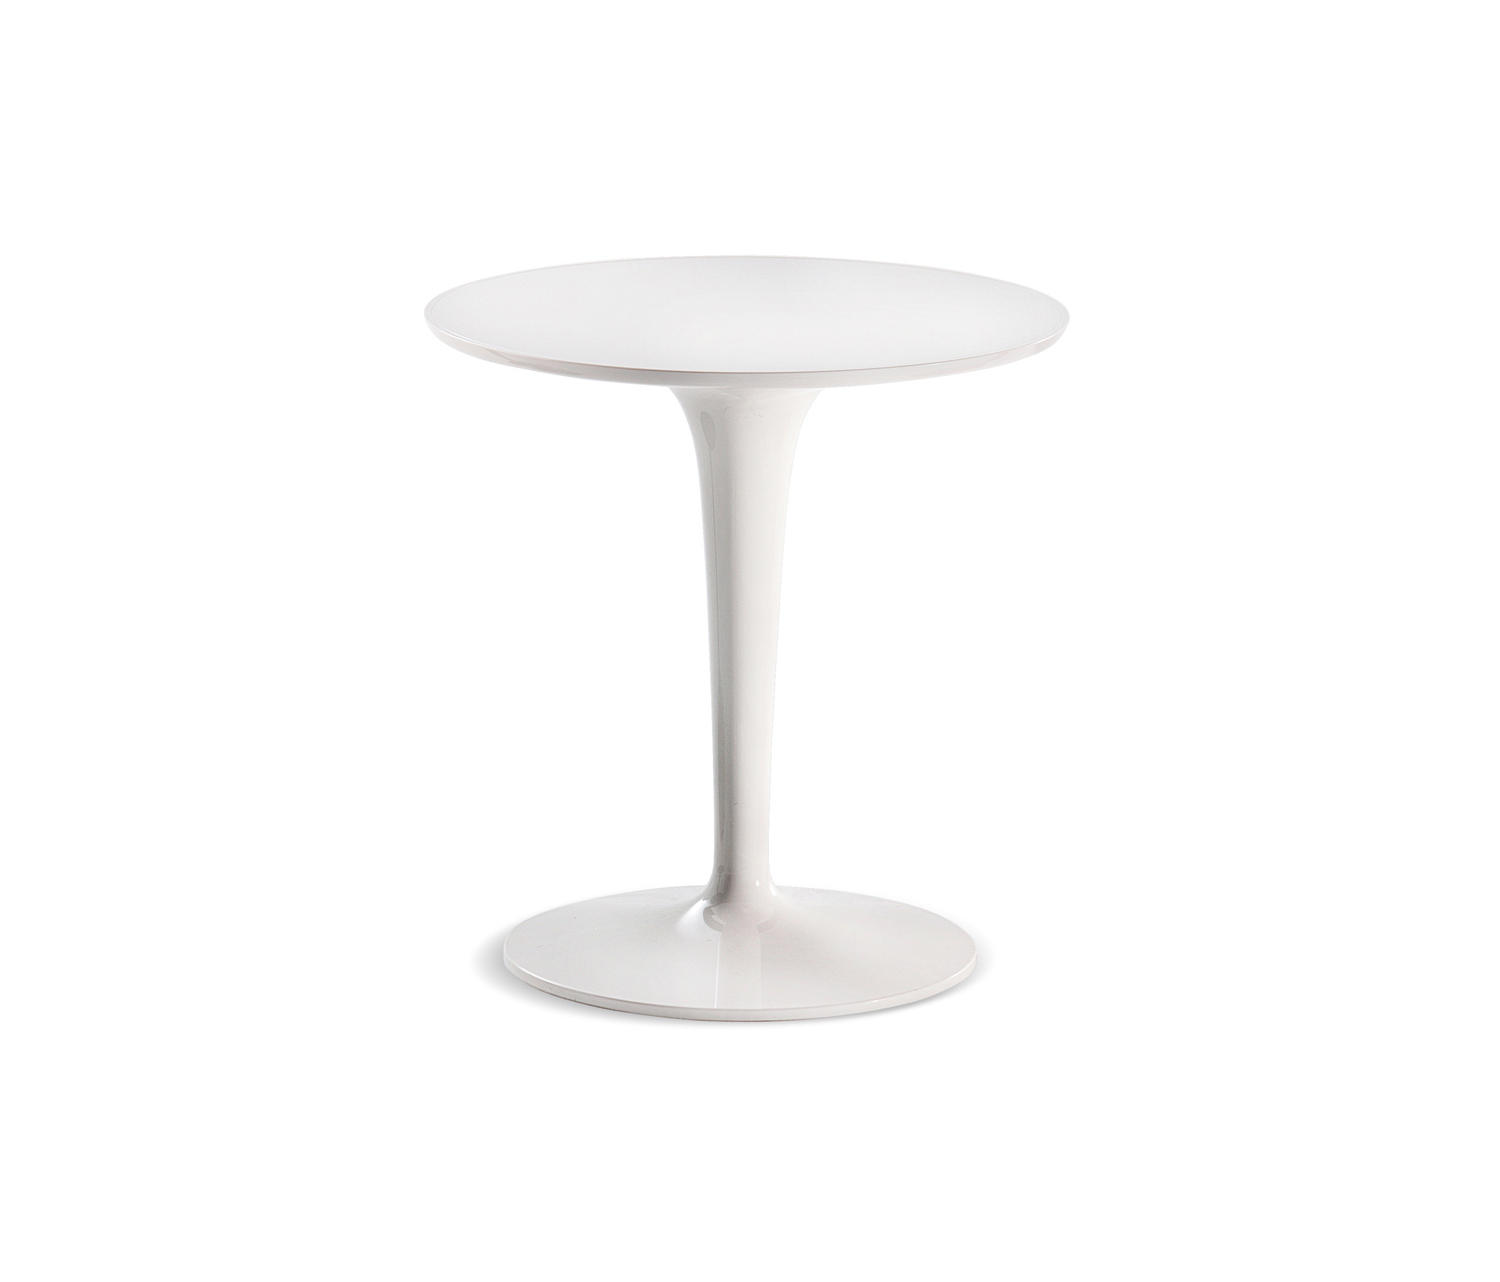 Tip top mono cafeteria tables from kartell architonic for Table kartell